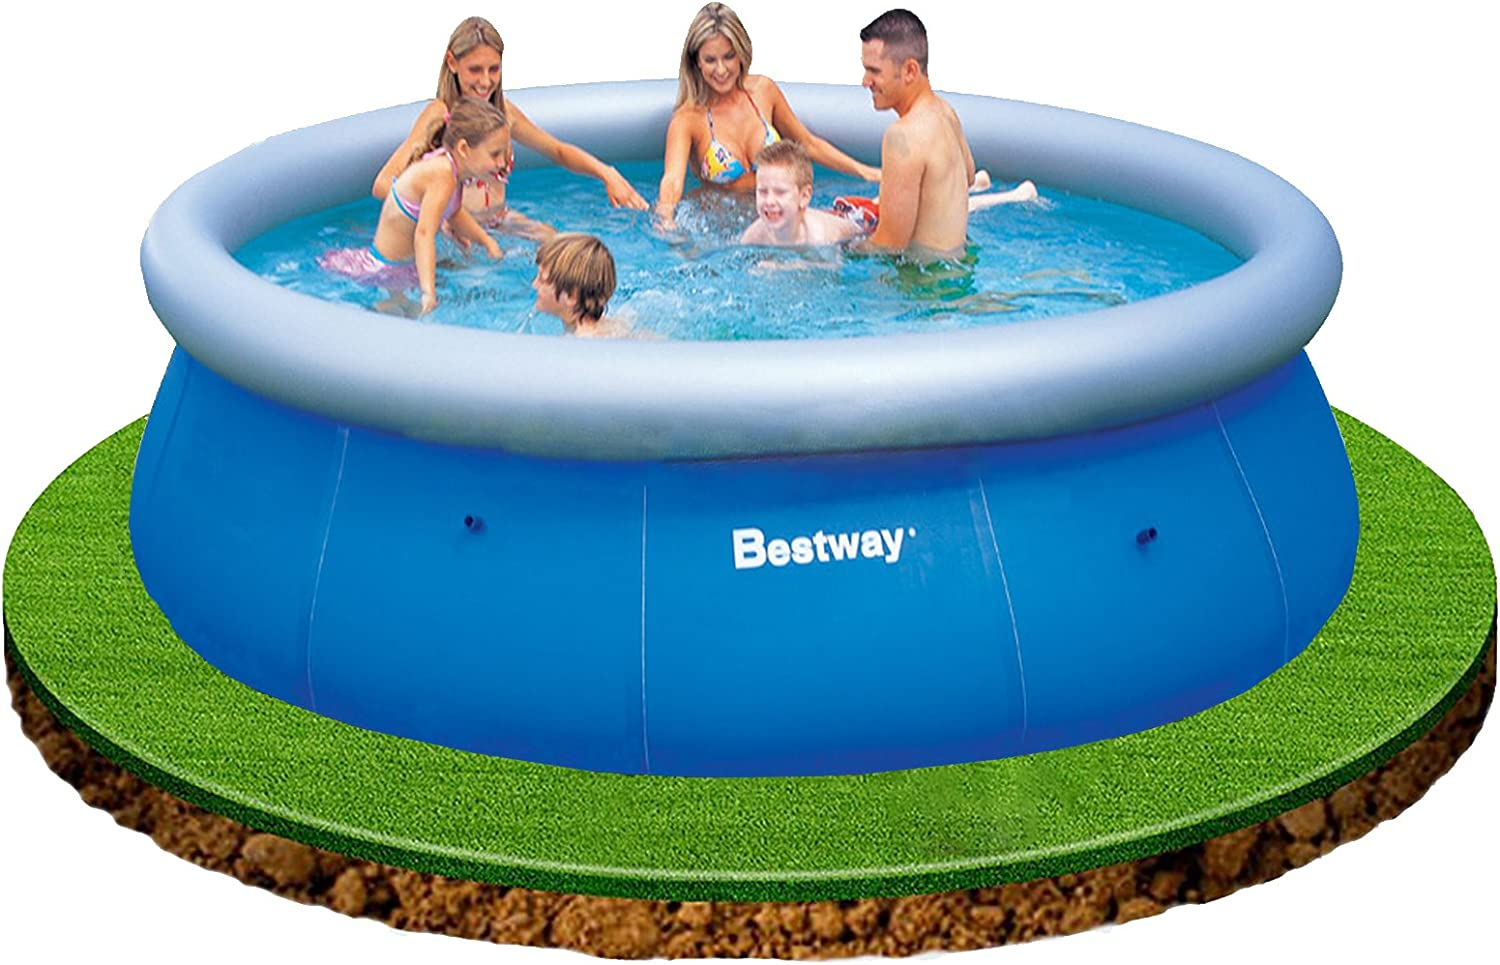 Bestway Fast Set - Piscina Redonda, 366 x 91 cm: Amazon.es: Jardín